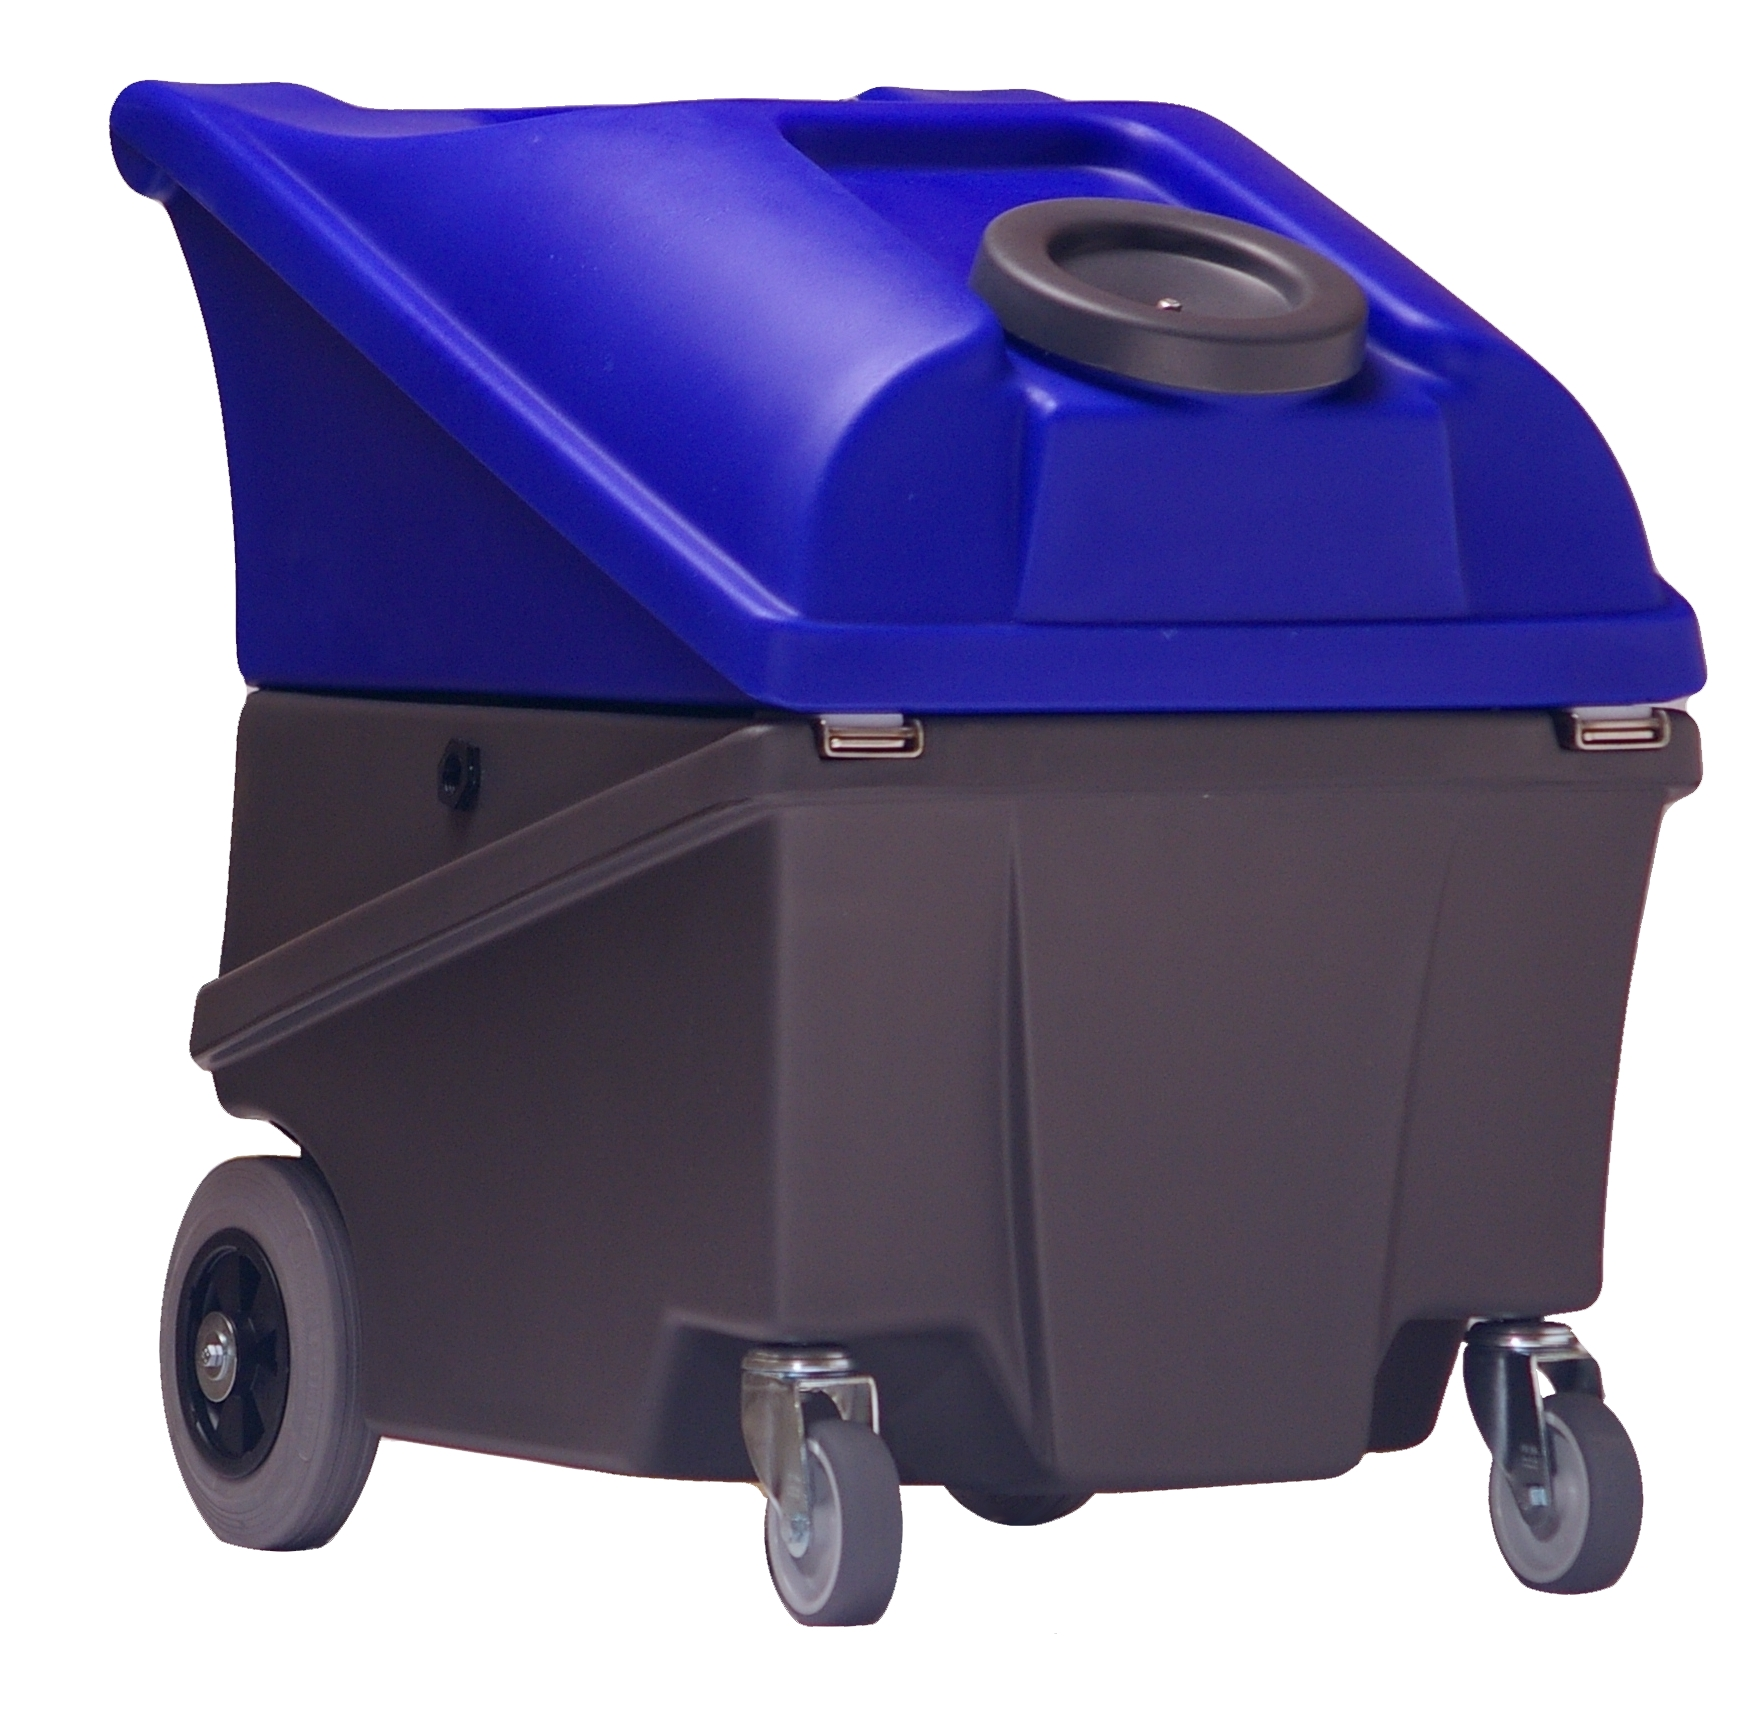 Lance Design Industrial Cleaning Equipment And